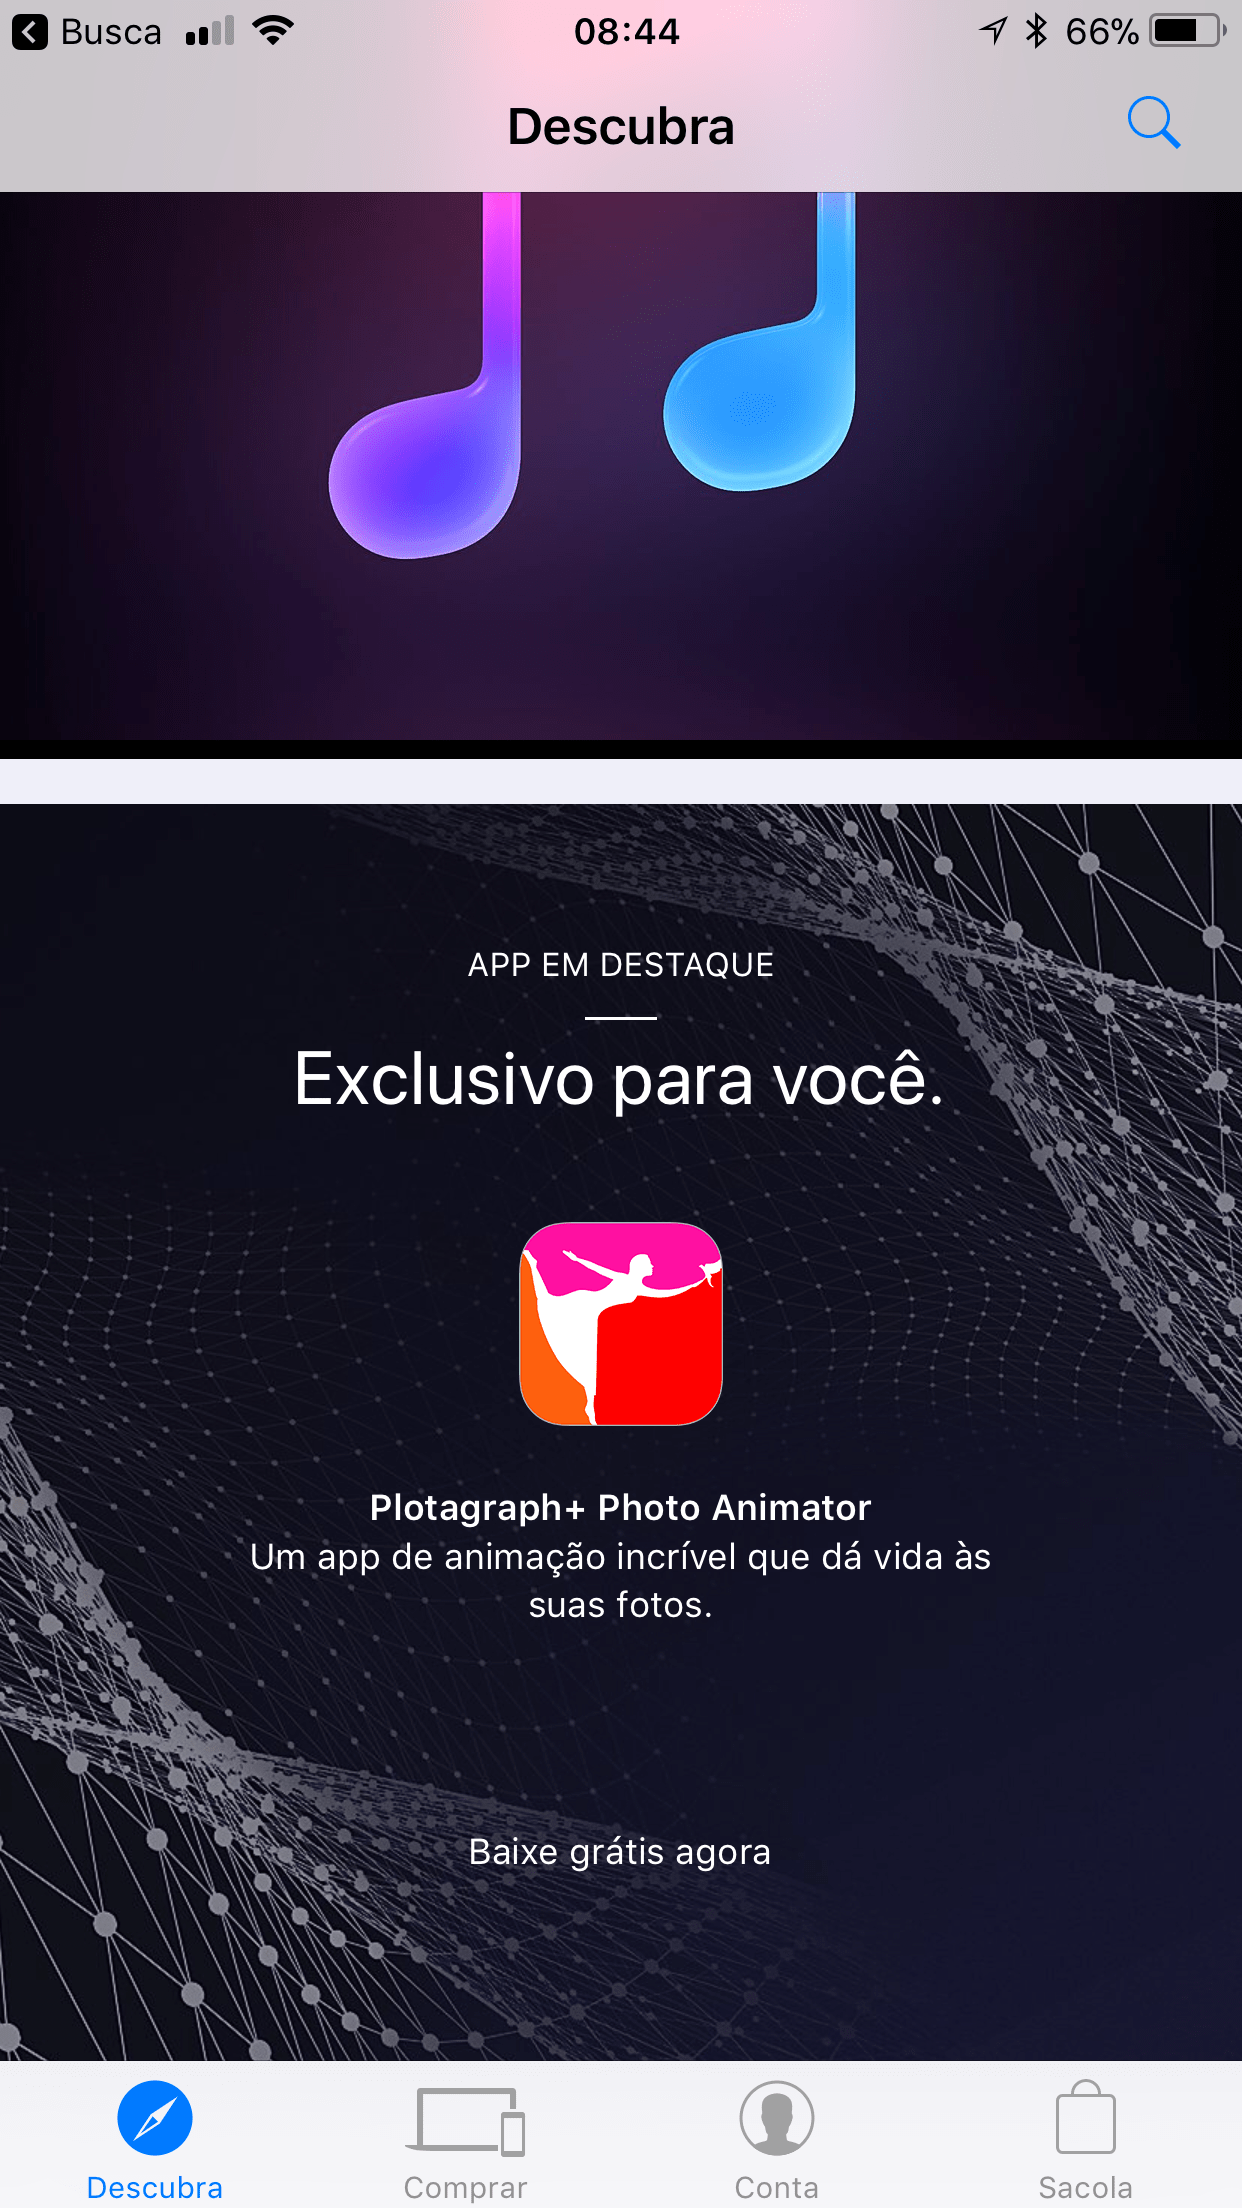 Plotagraph+ Photo Animator no app Apple Store